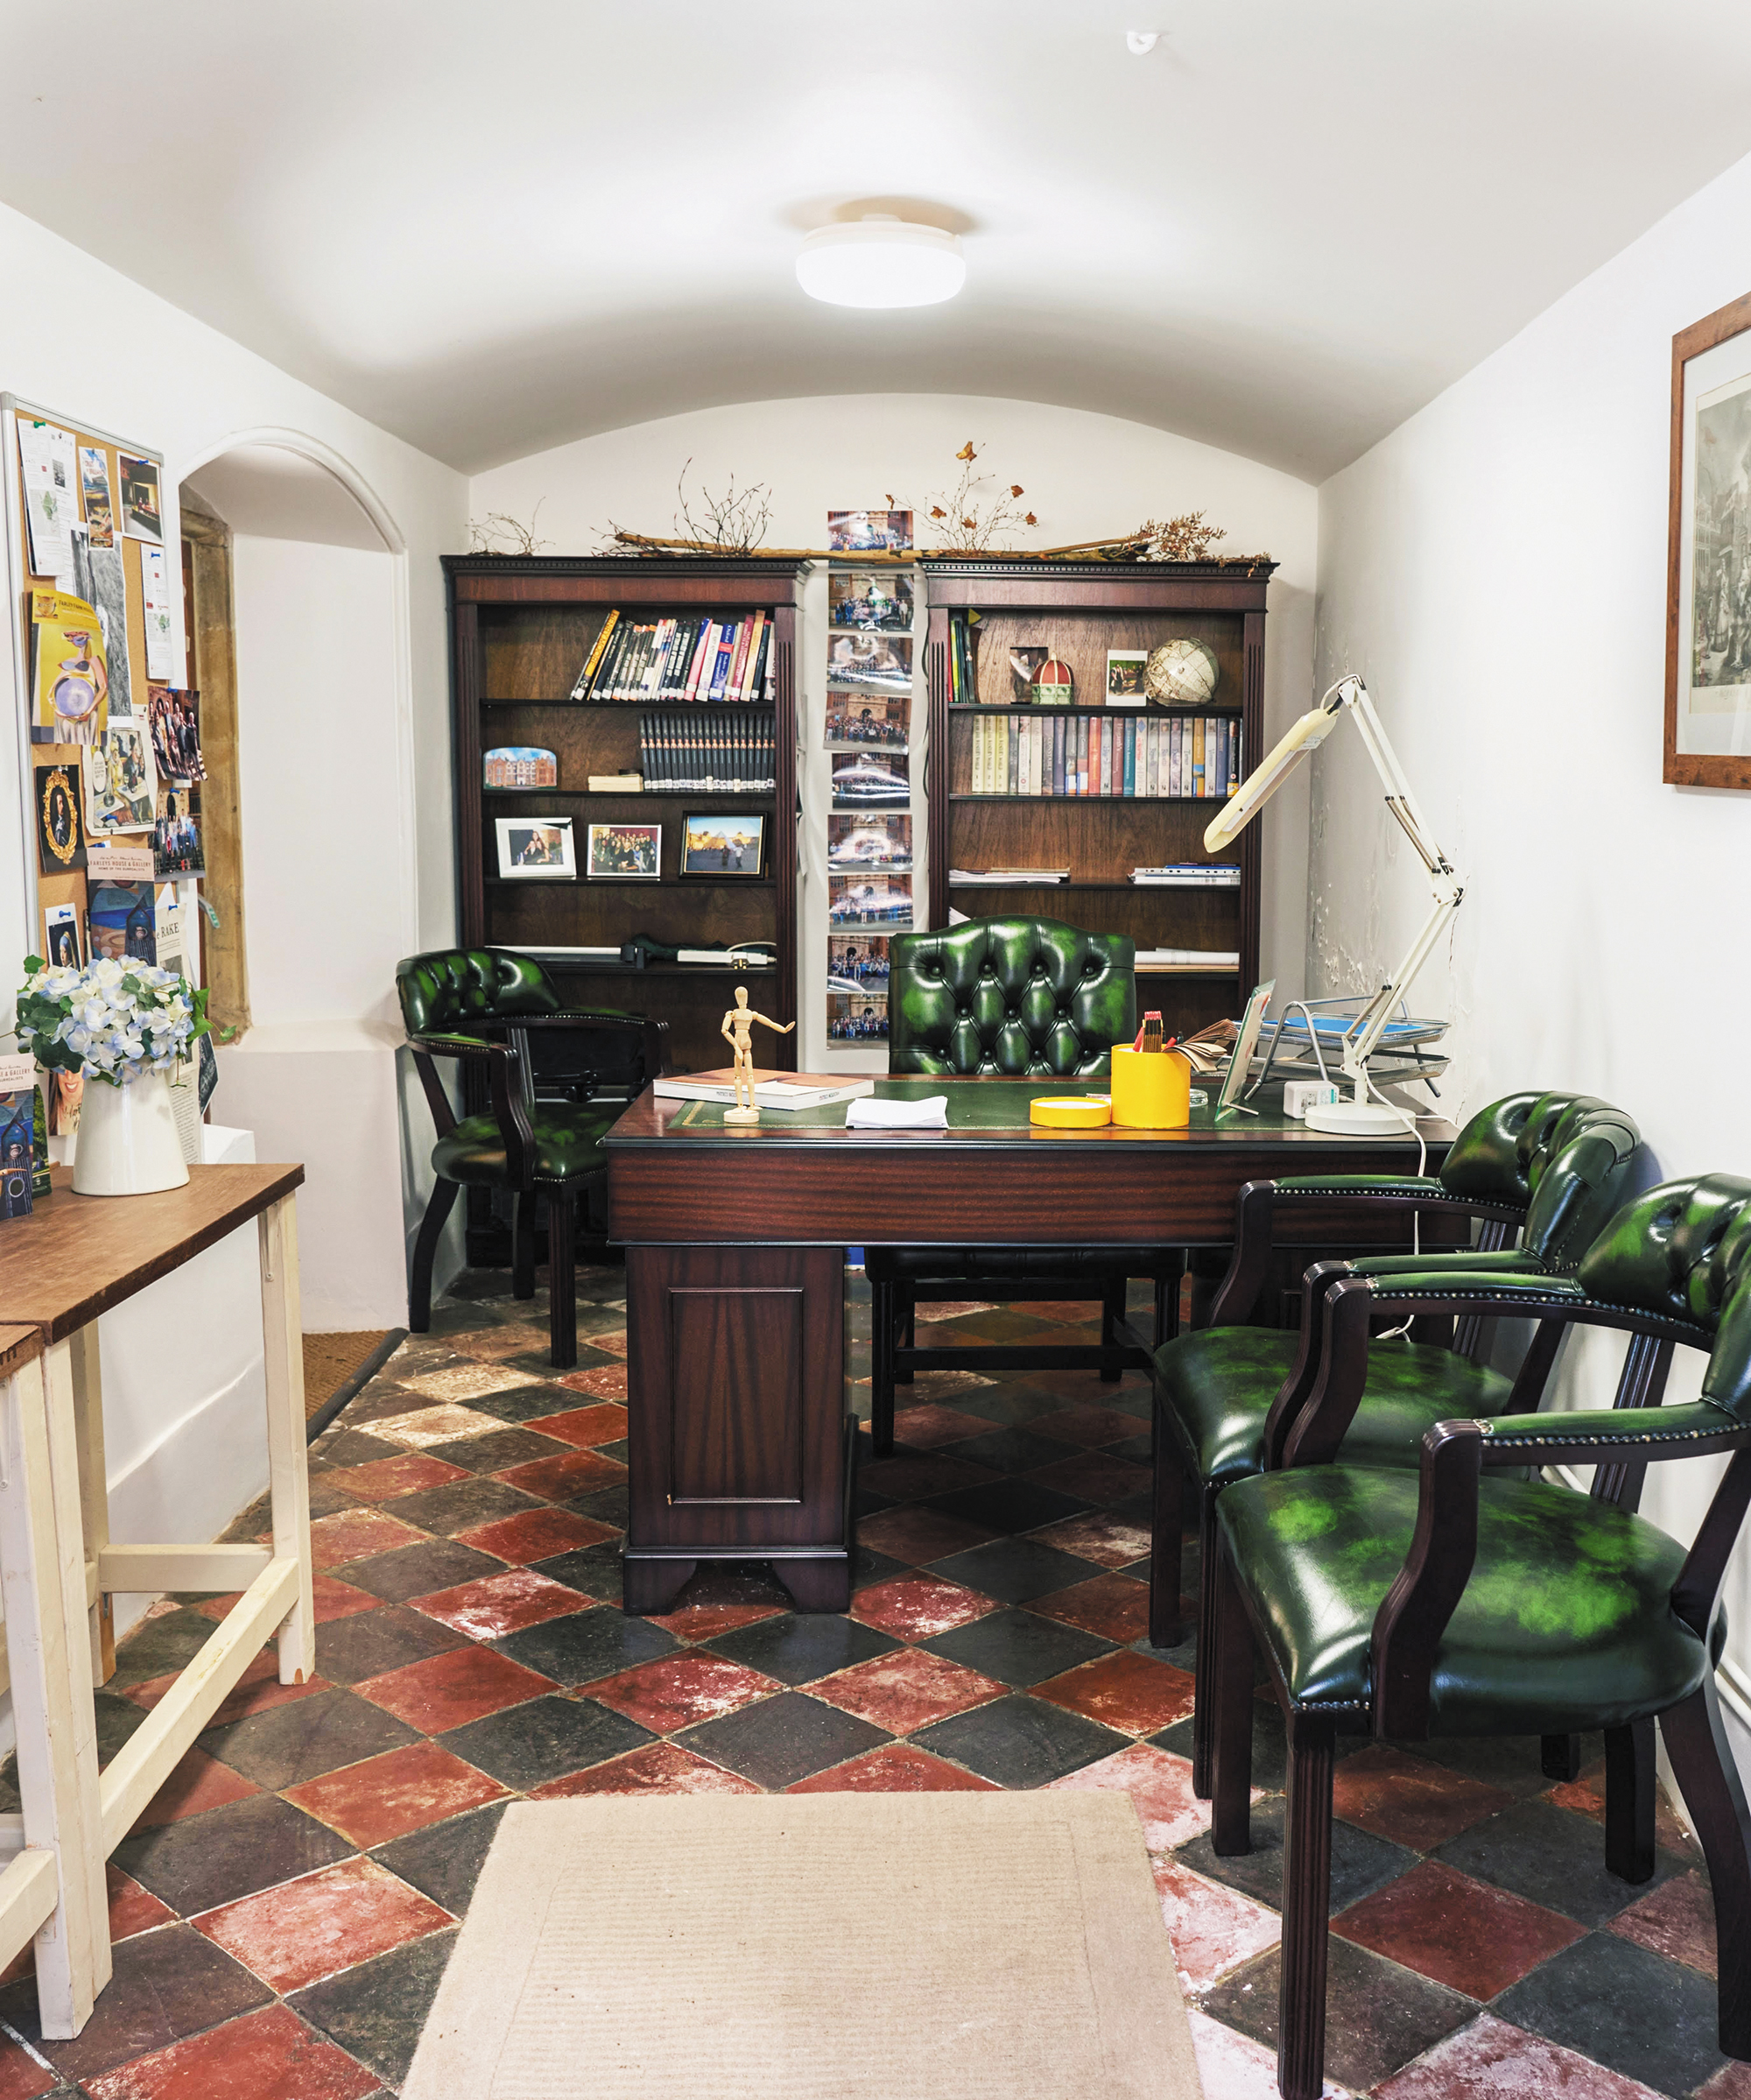 A full view photo of a unique basement office space.